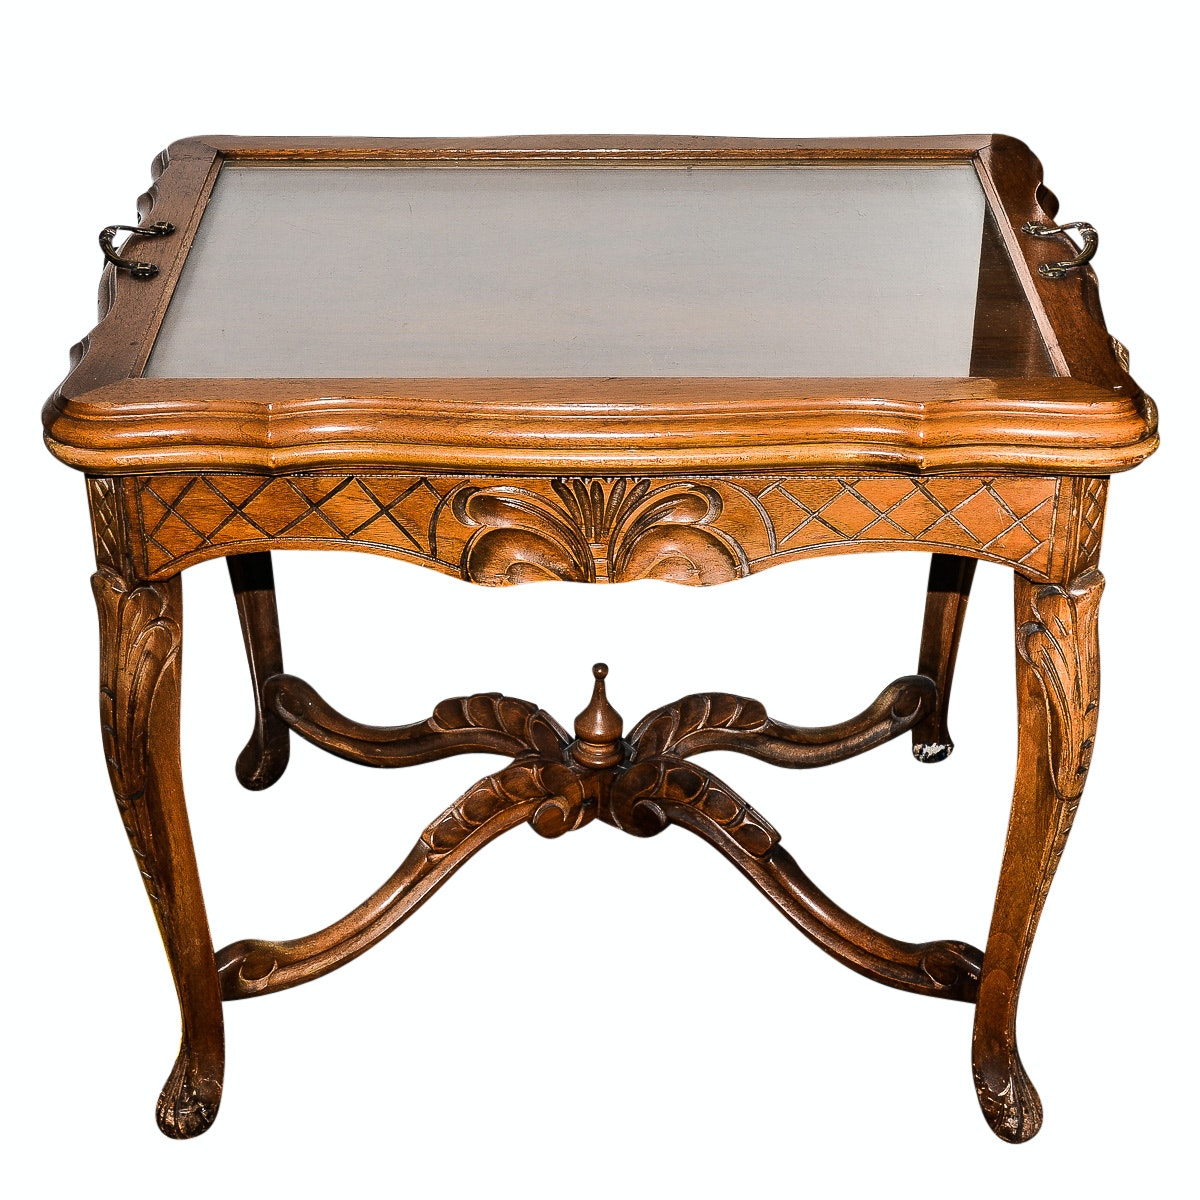 Rococo Revival  Style Tray Top Side Table